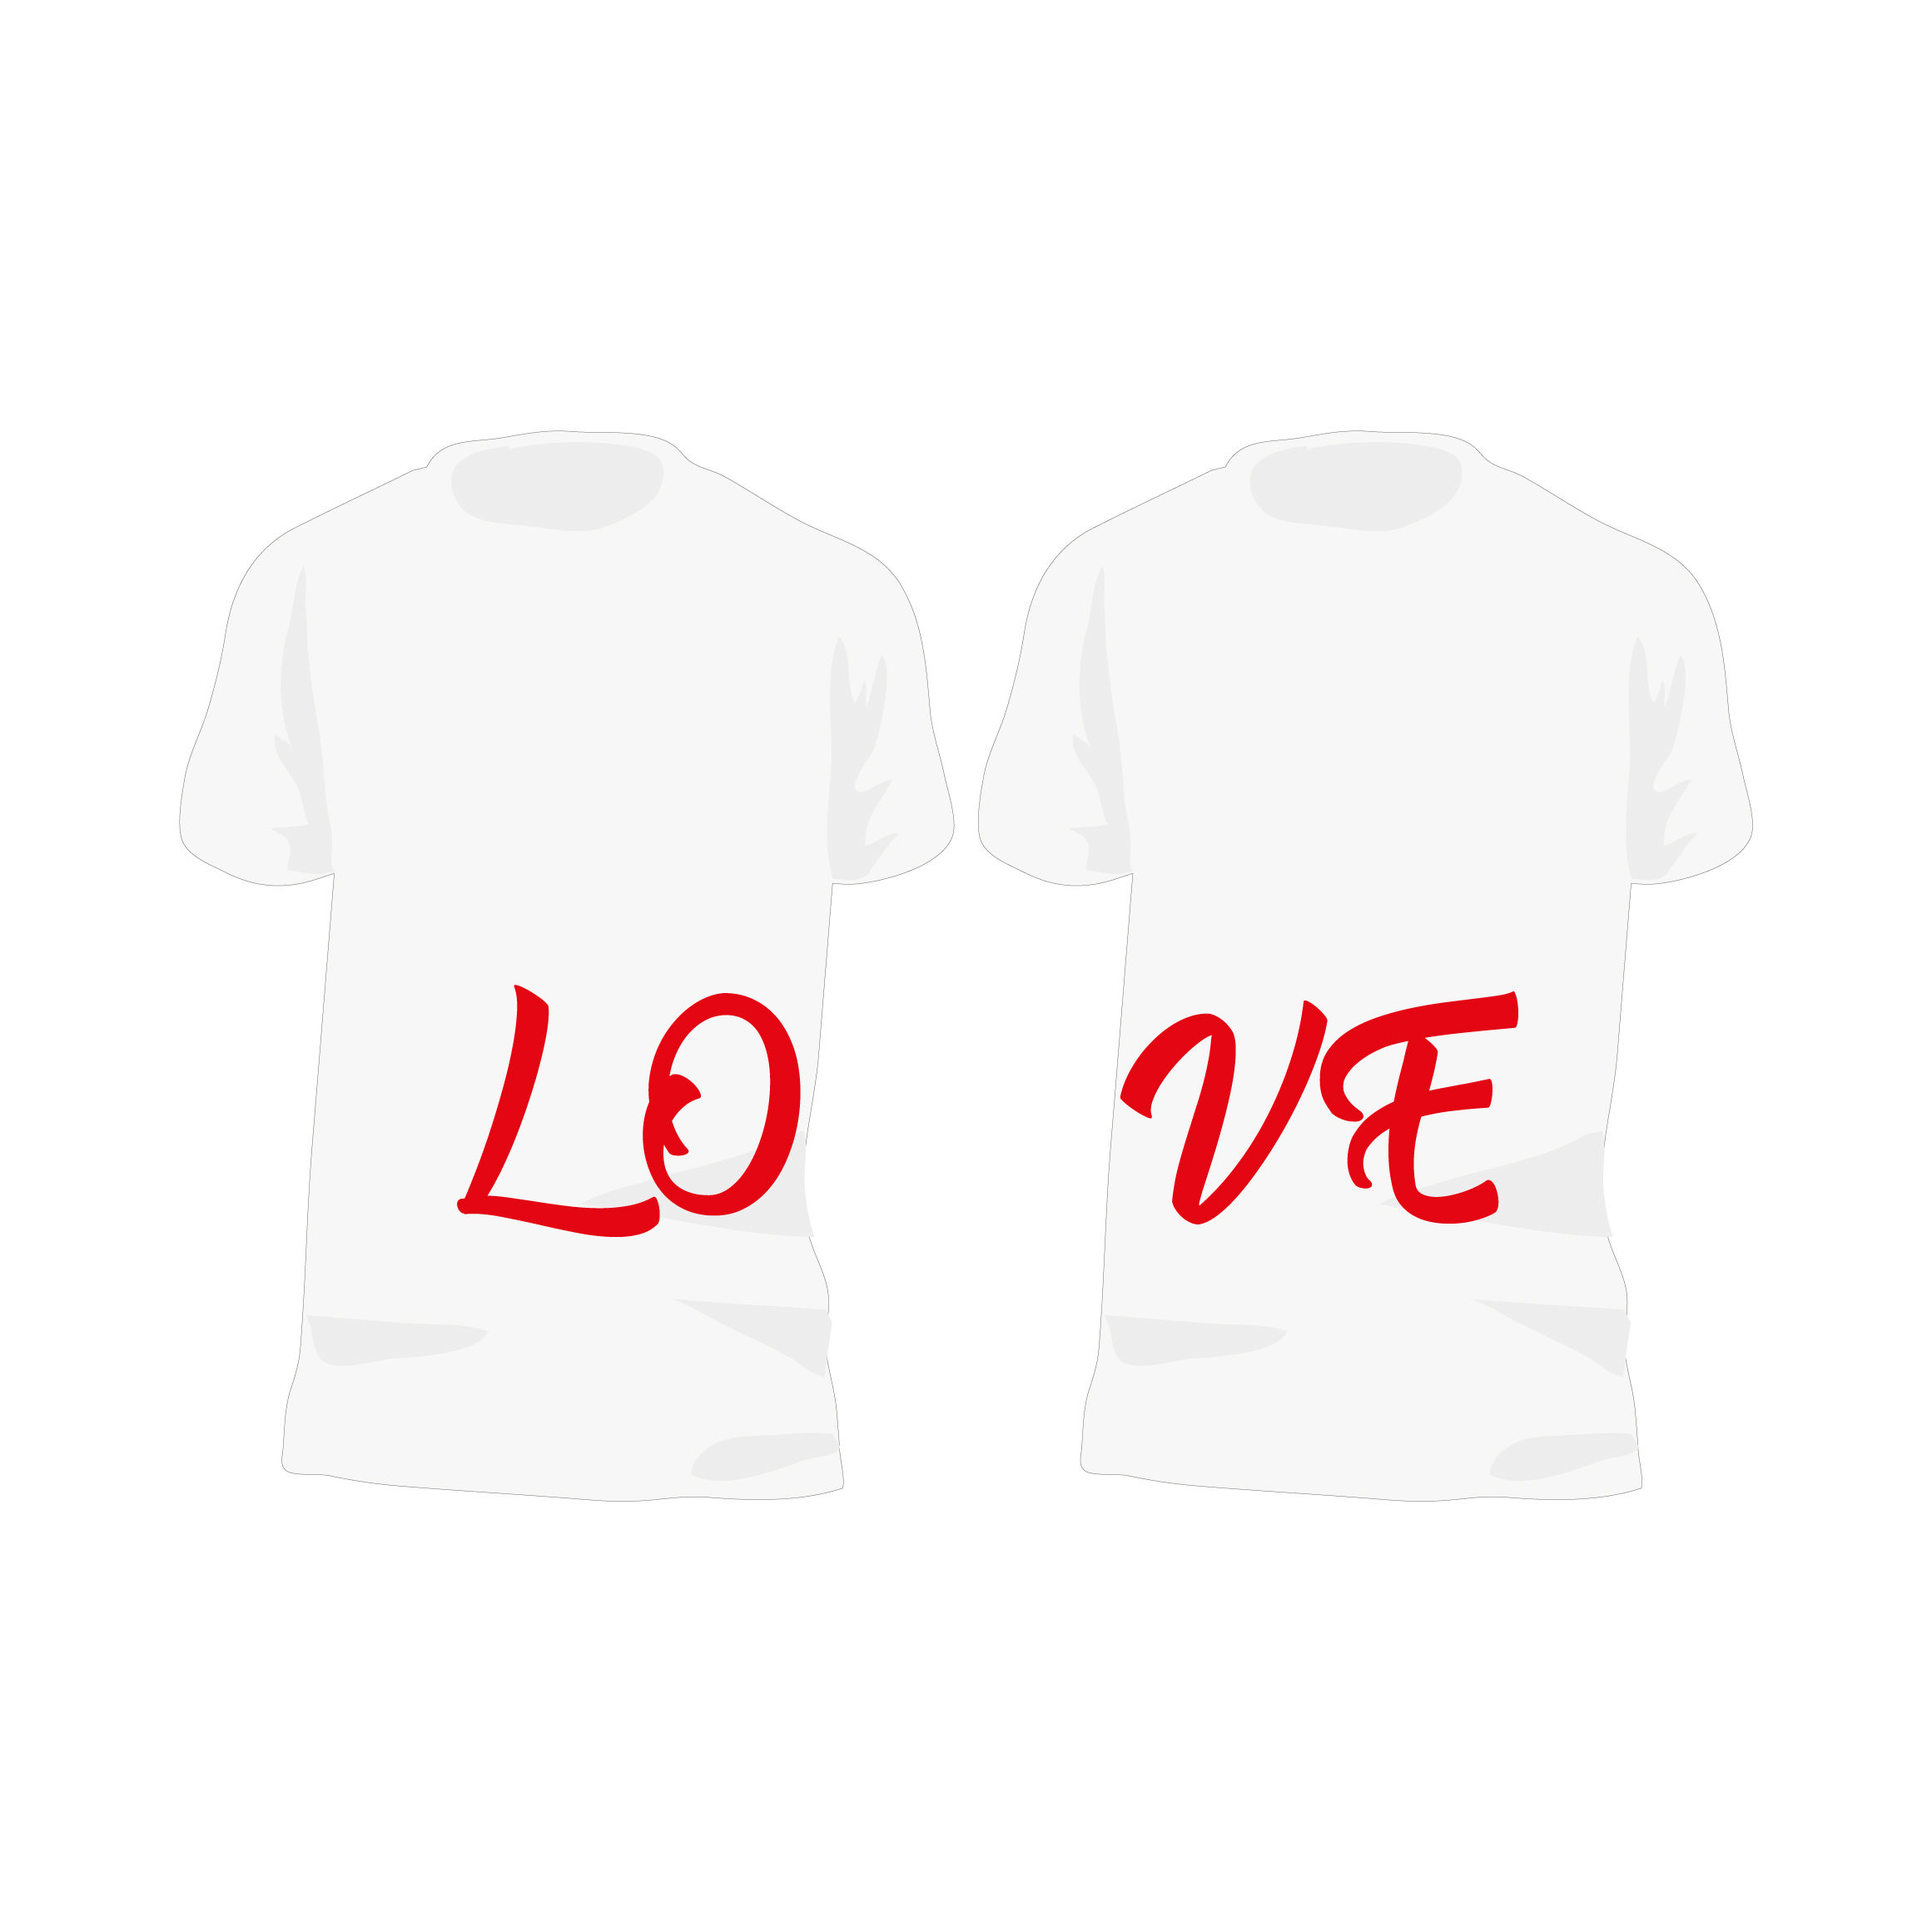 LO-VE shirts